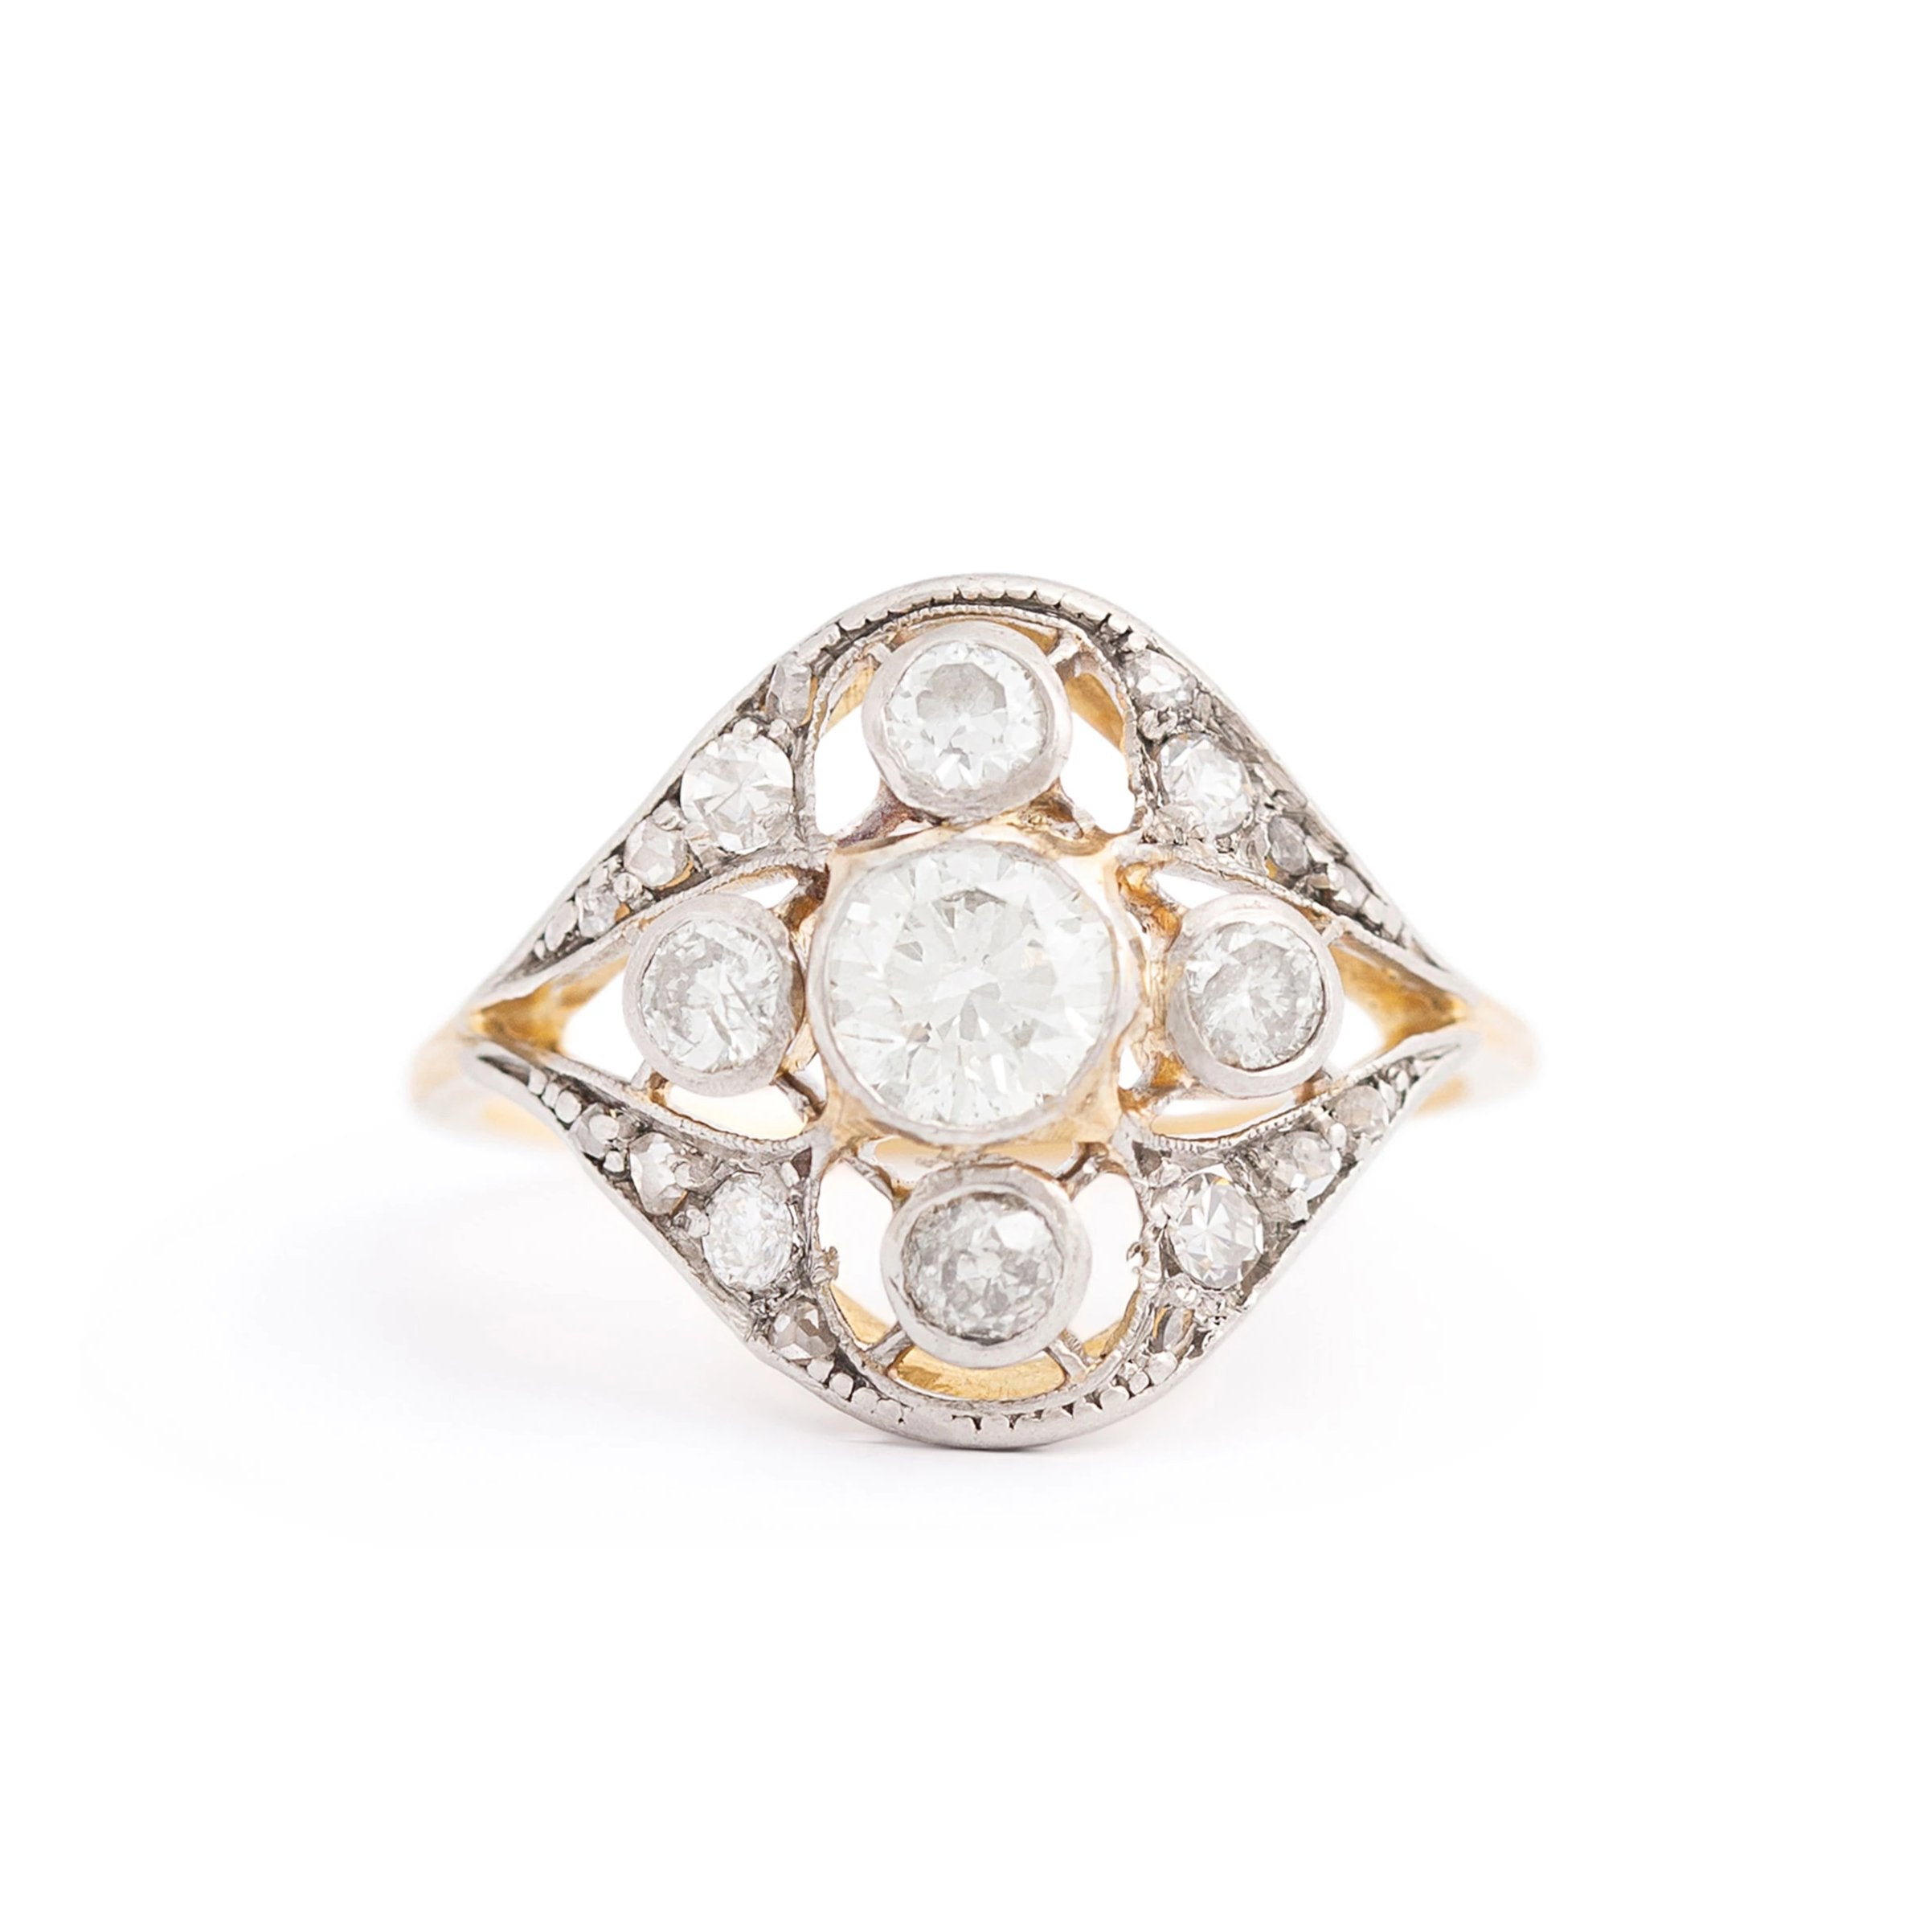 Edwardian Old European Cut Diamond Platinum and 18K Gold Ring